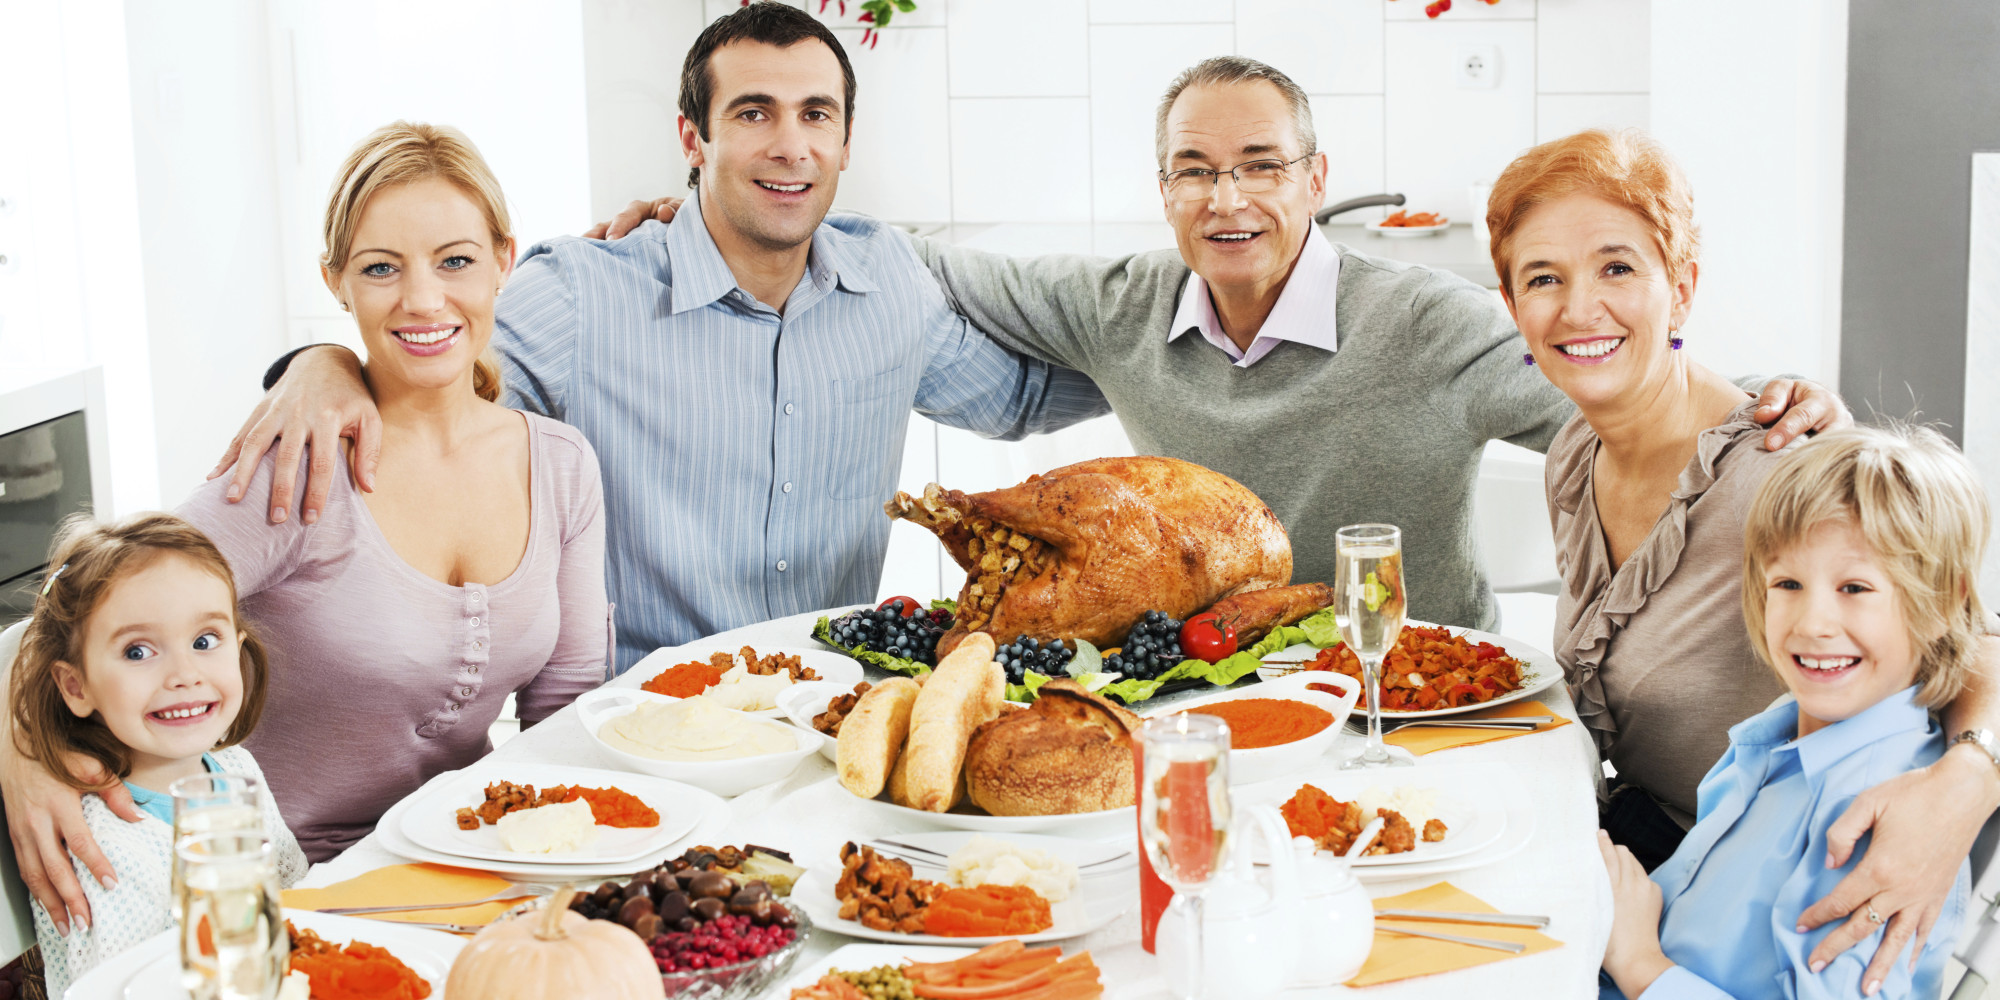 For Thanksgiving Dinner People Generally Eat Turkey With Stuffing And Gravy Corn Carrots Mashed Potatoes Green Beans Butternut Squash Cranberry Sauce